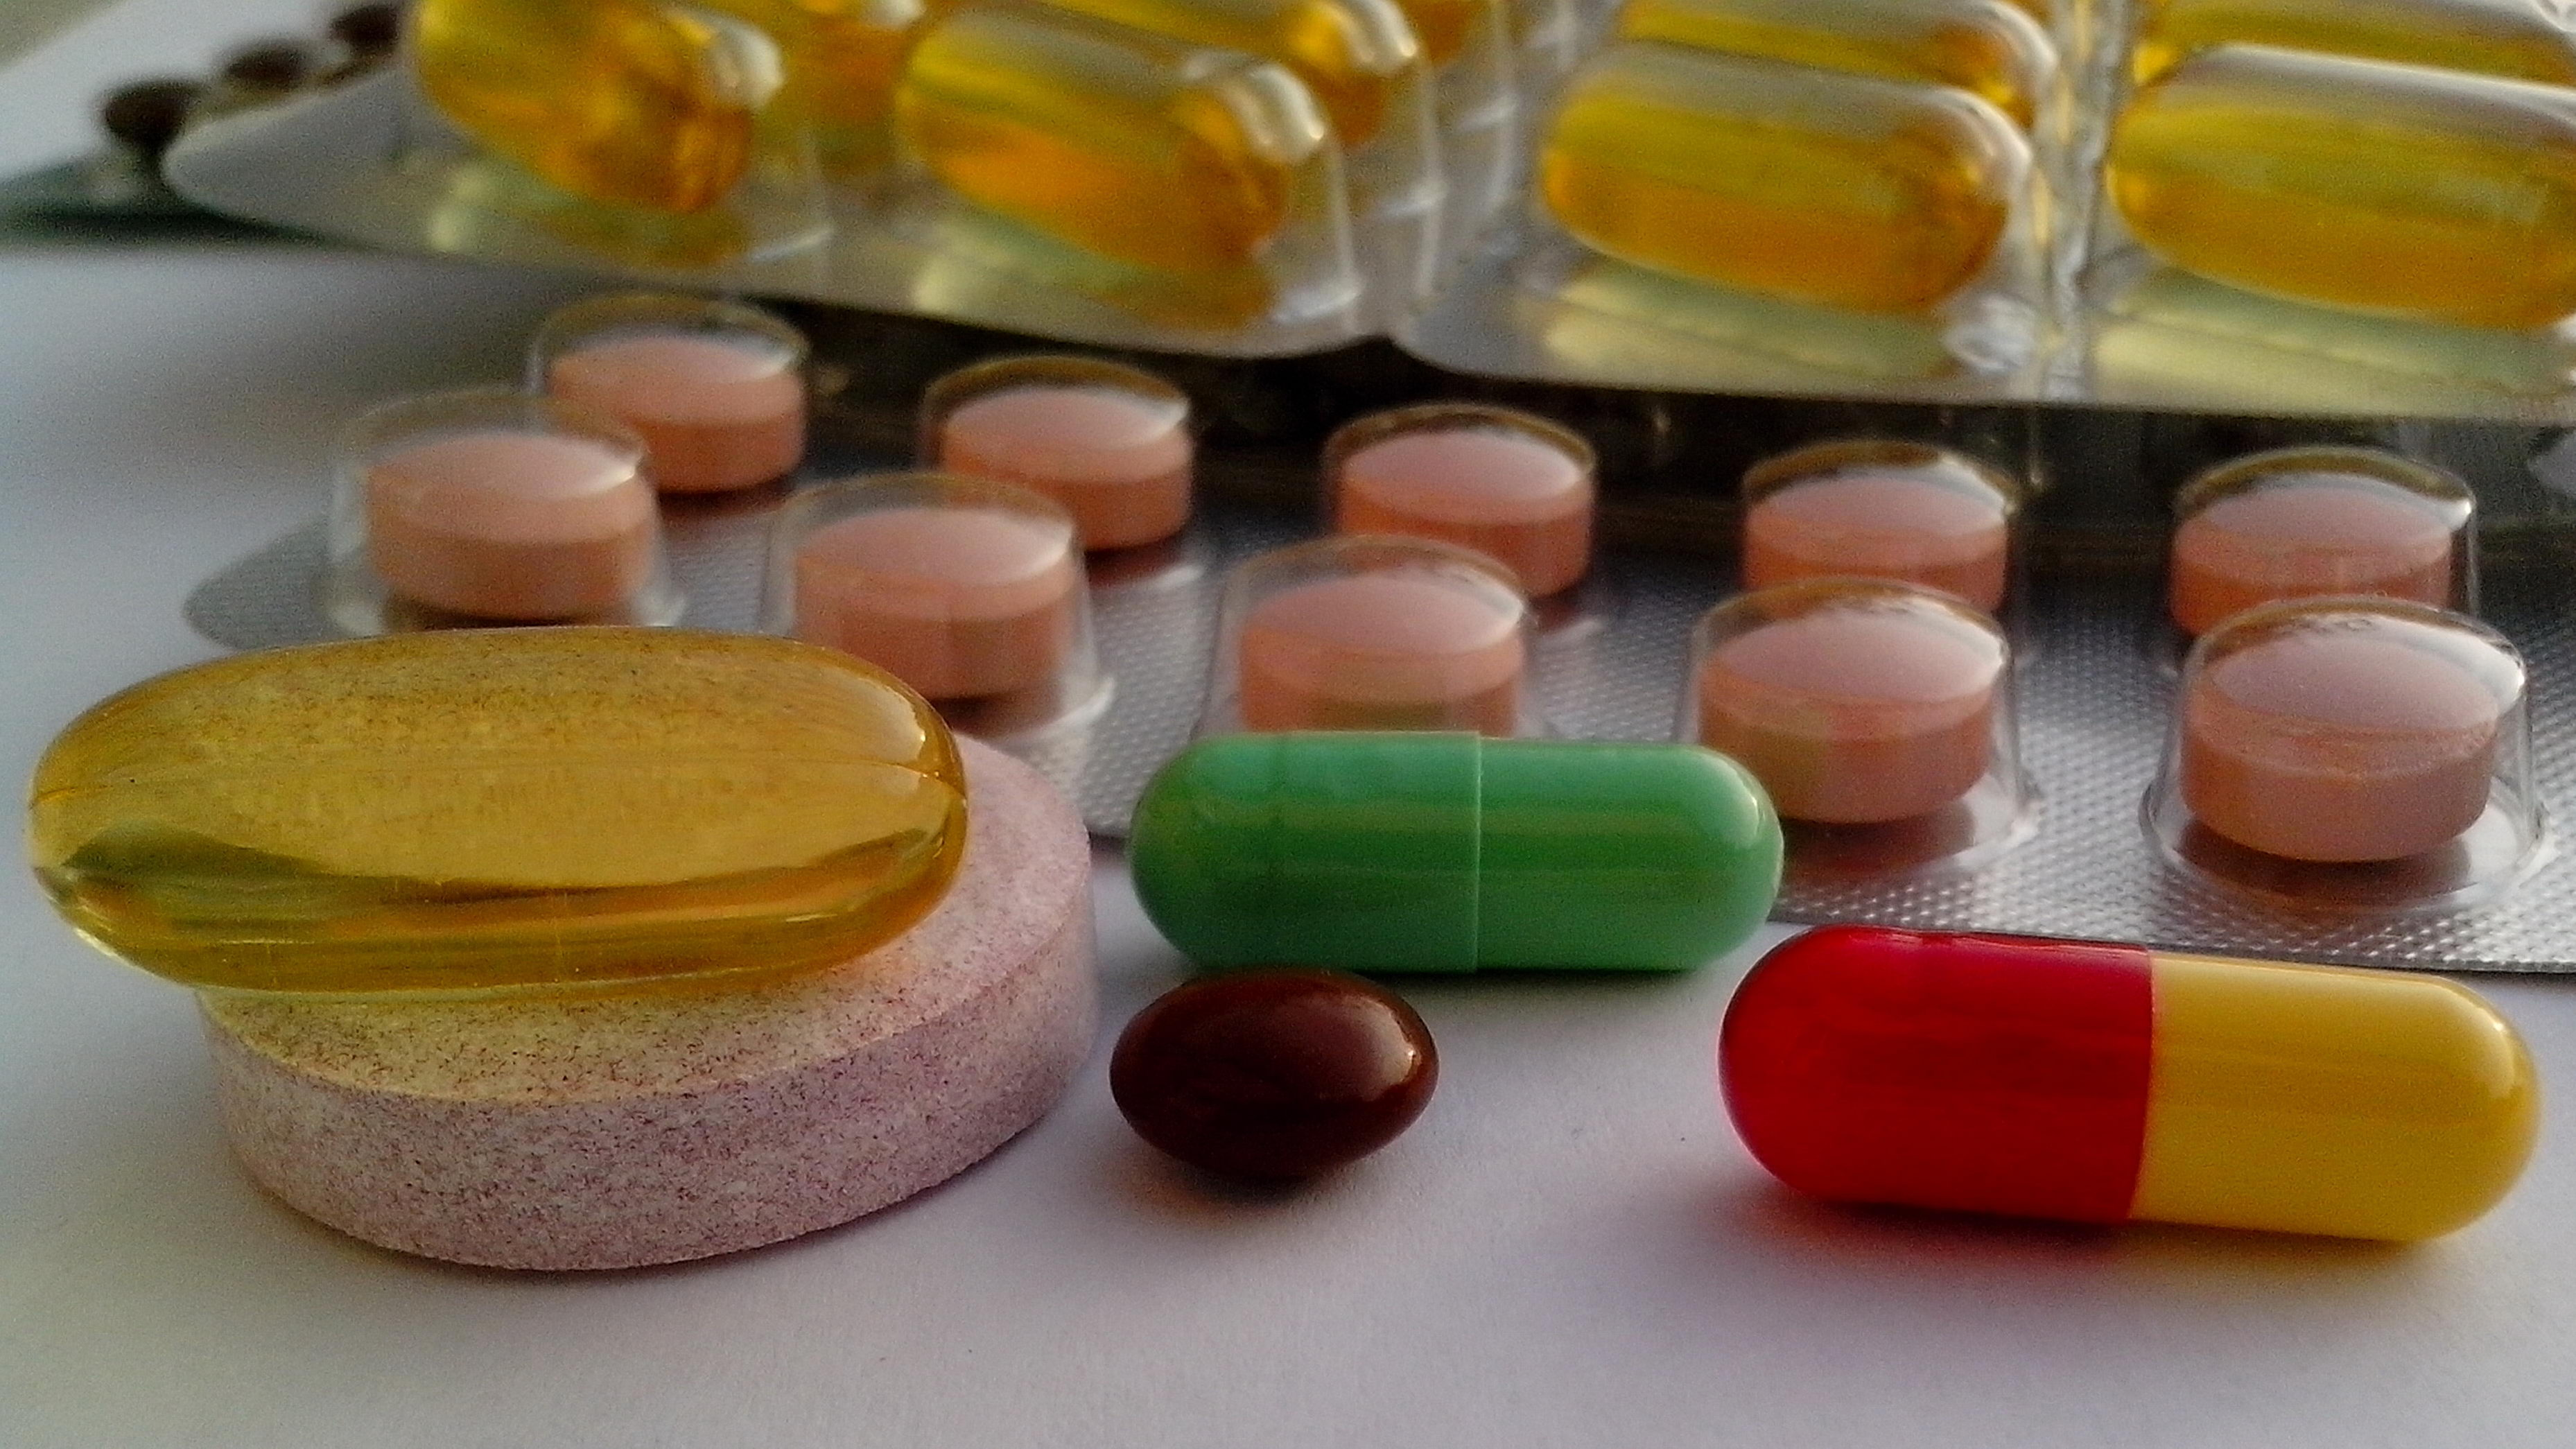 Free photograph; vitamins, minerals, table